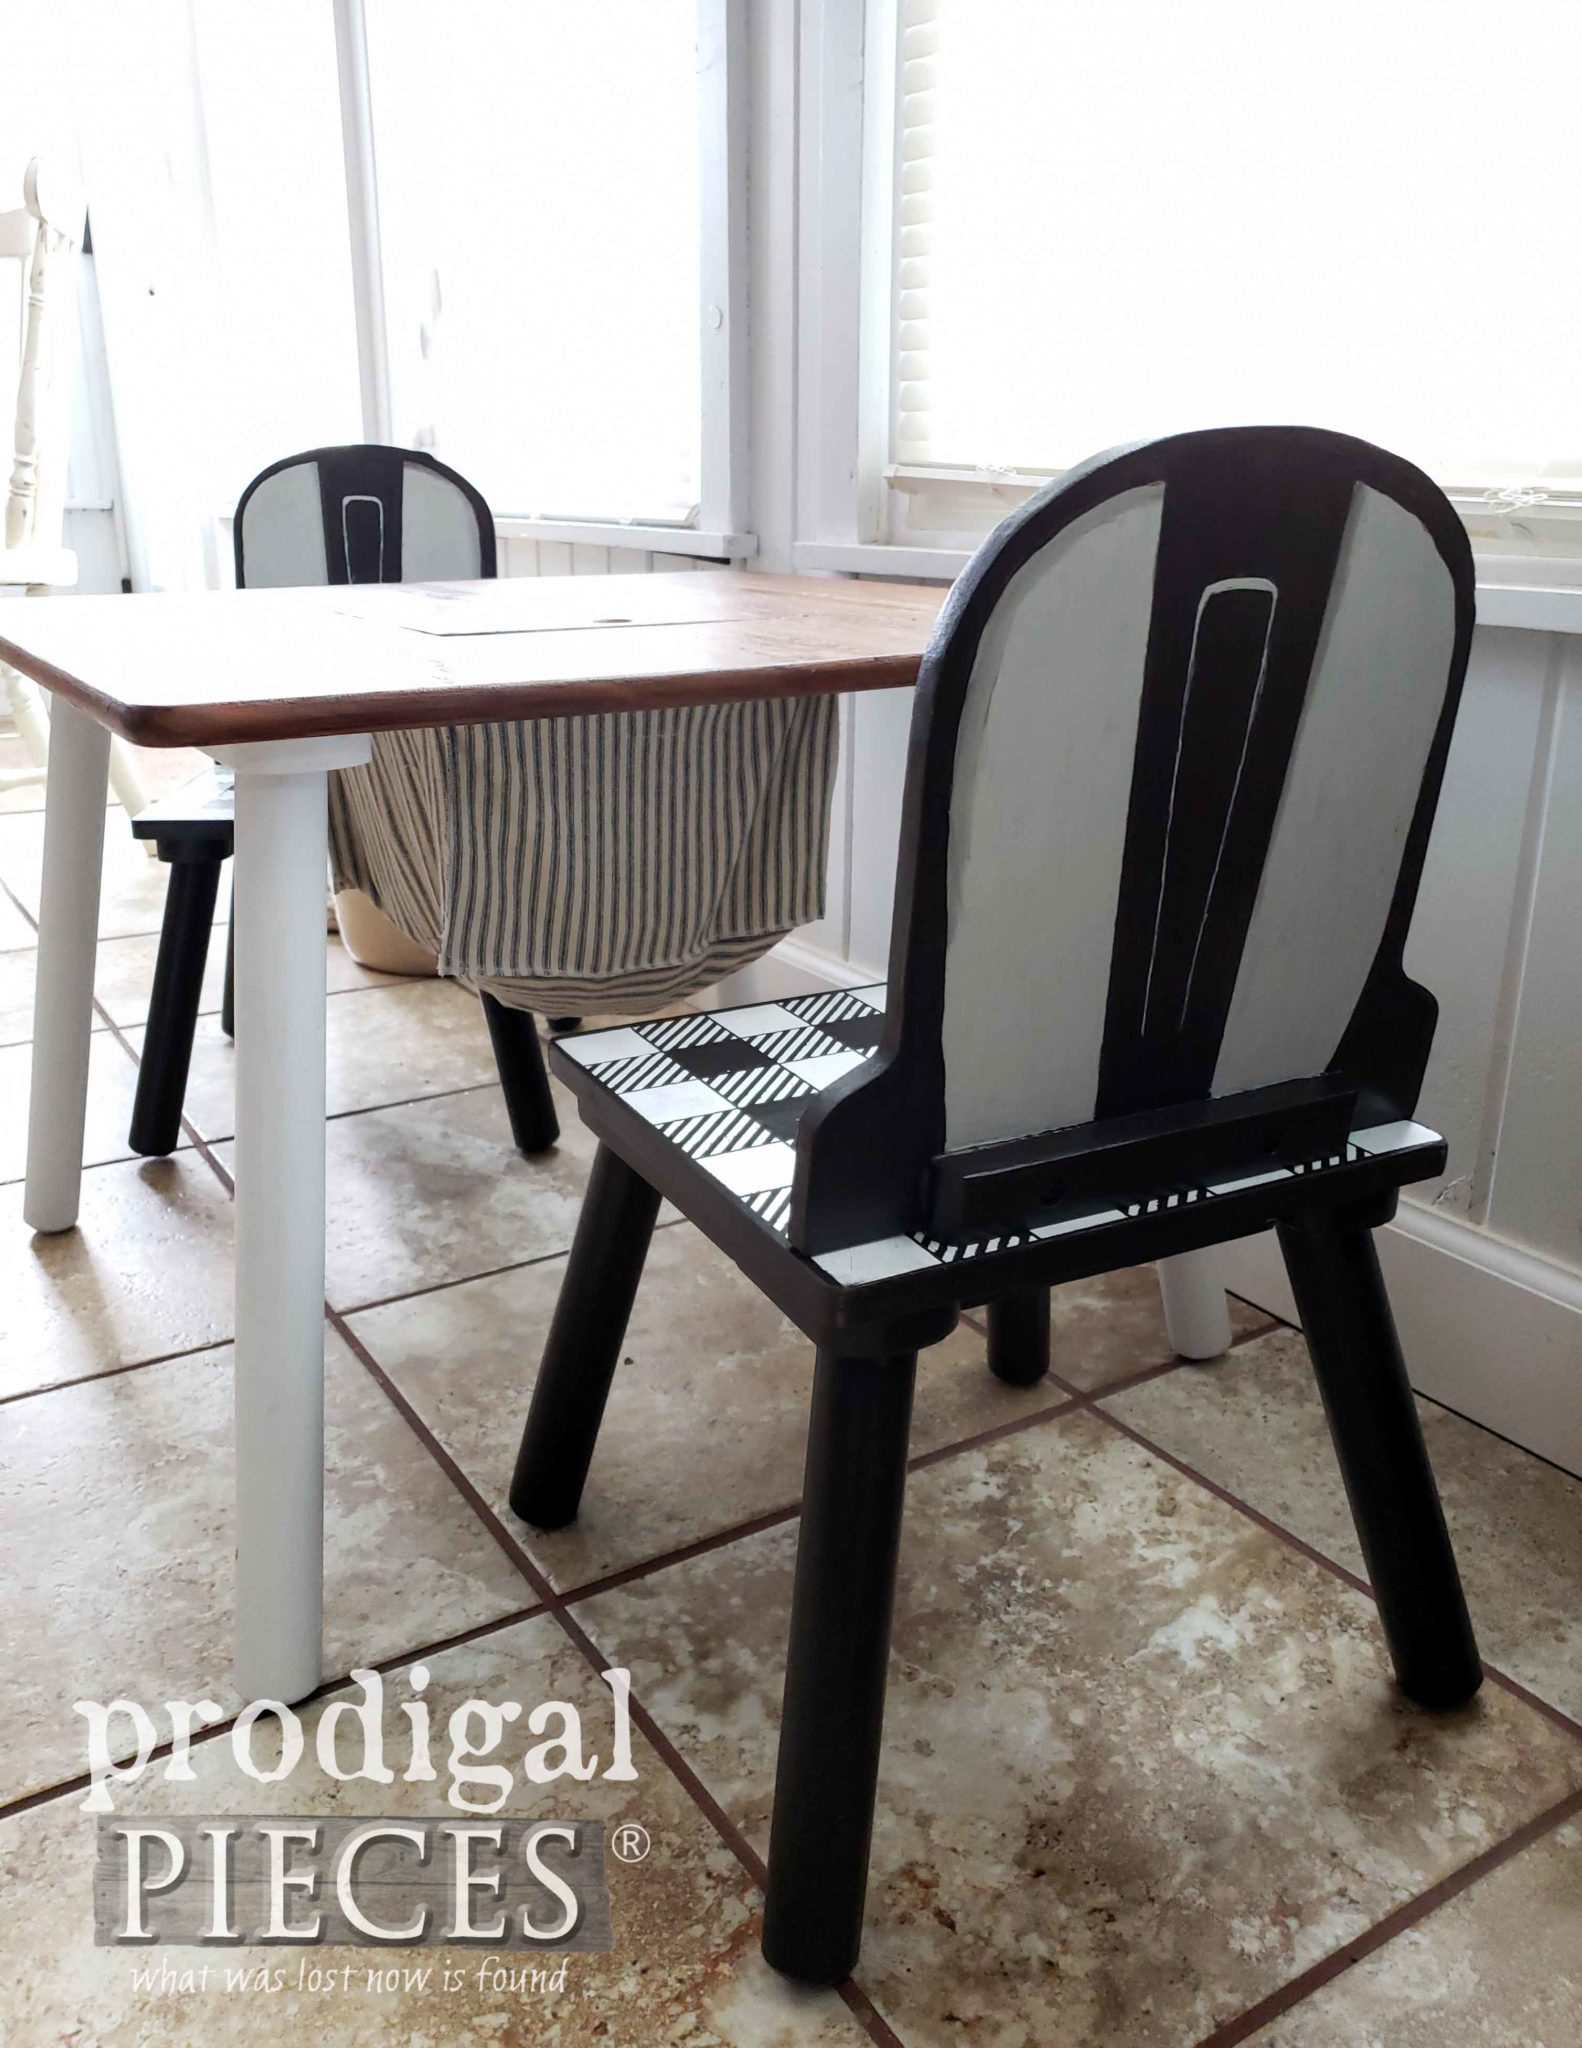 Pretend Play Kids Farmhouse Table and Chair Set with Buffalo Check Created by Larissa of Prodigal Pieces | prodigalpieces.com